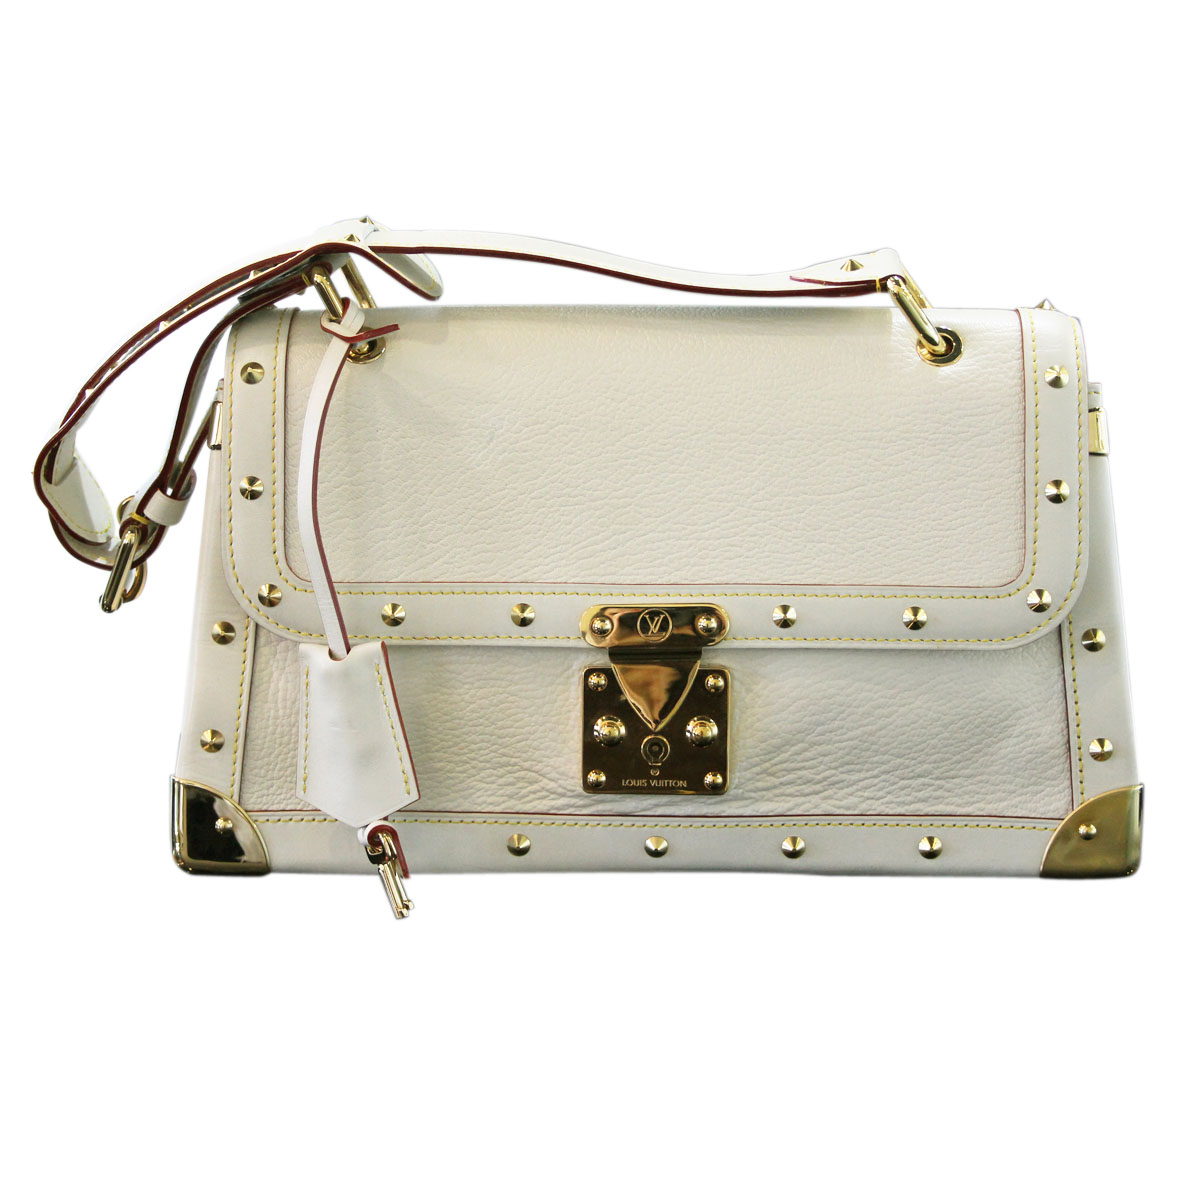 Louis Vuitton Suhali Talentueux Ivory and Gold